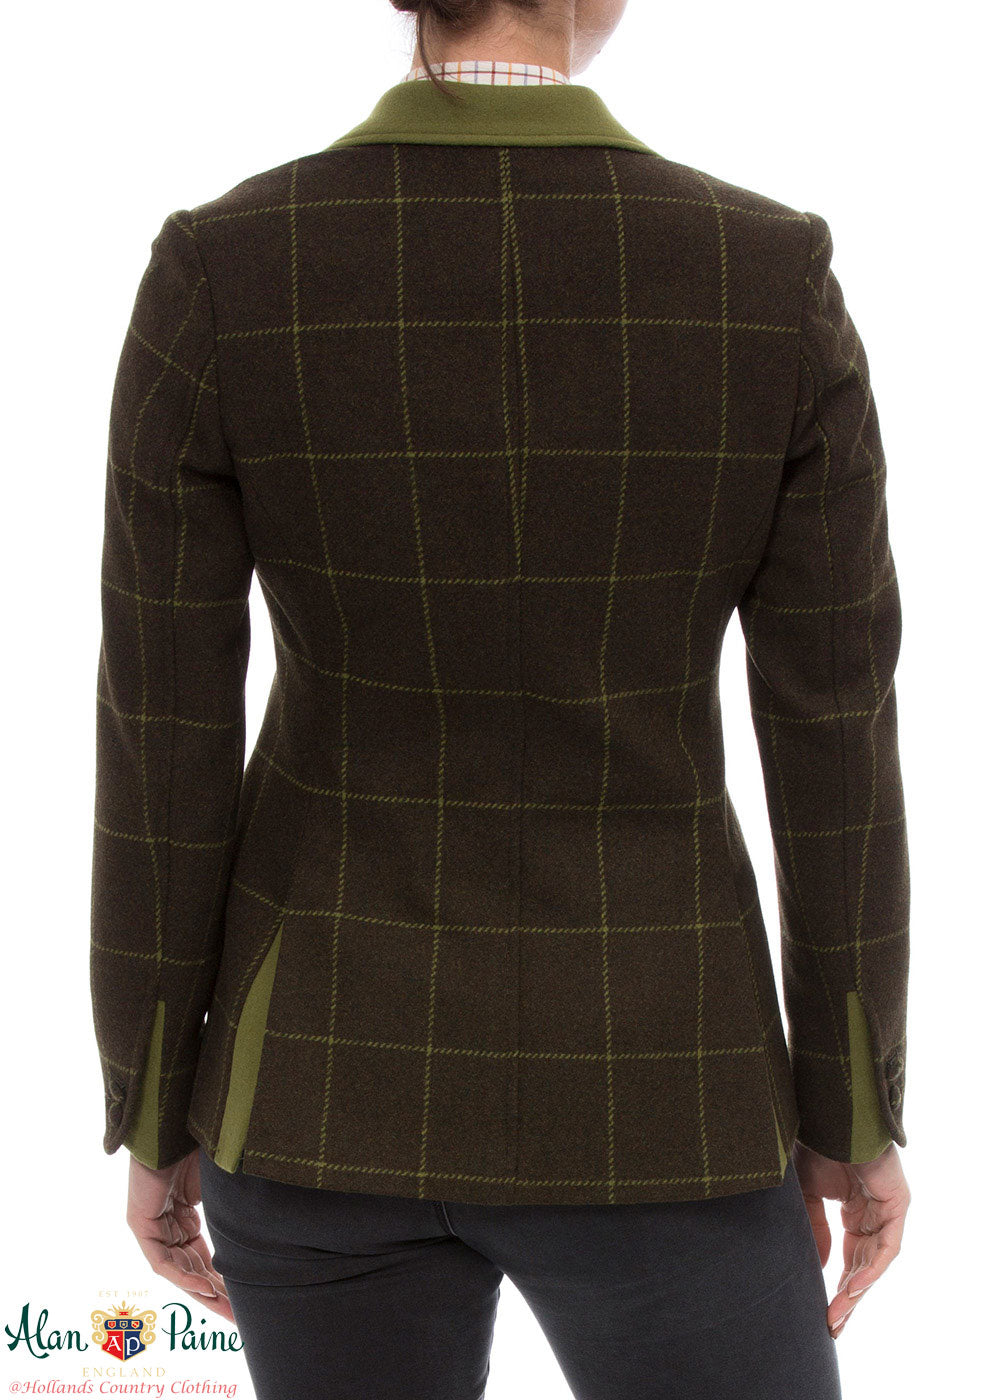 Combrook Ladies Tweed Blazer by Alan Paine